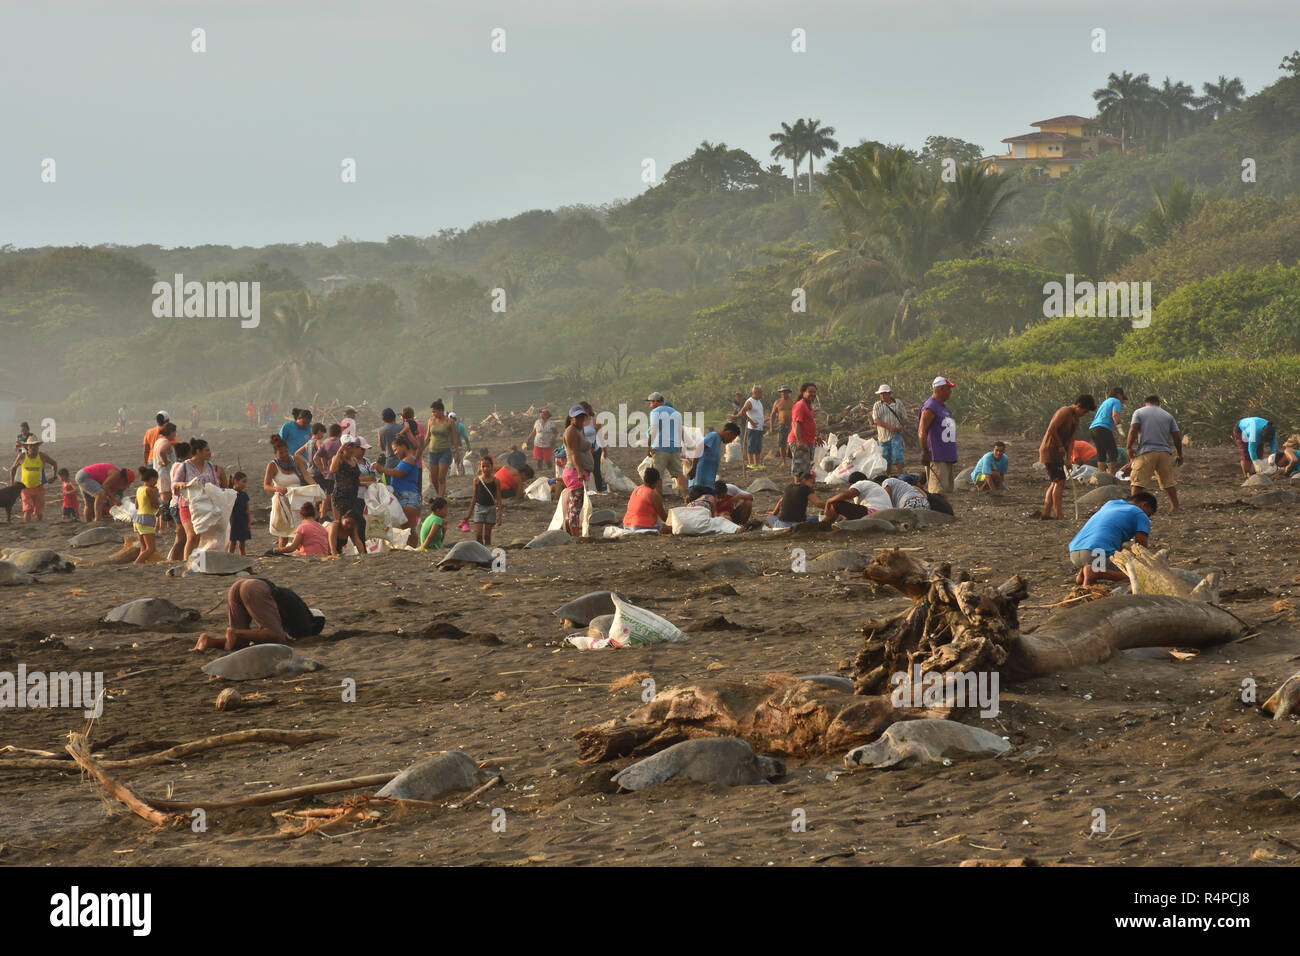 A Ostional people collect the turtles eggs in Ostional beach; Costa Rica, Guancaste - Stock Image